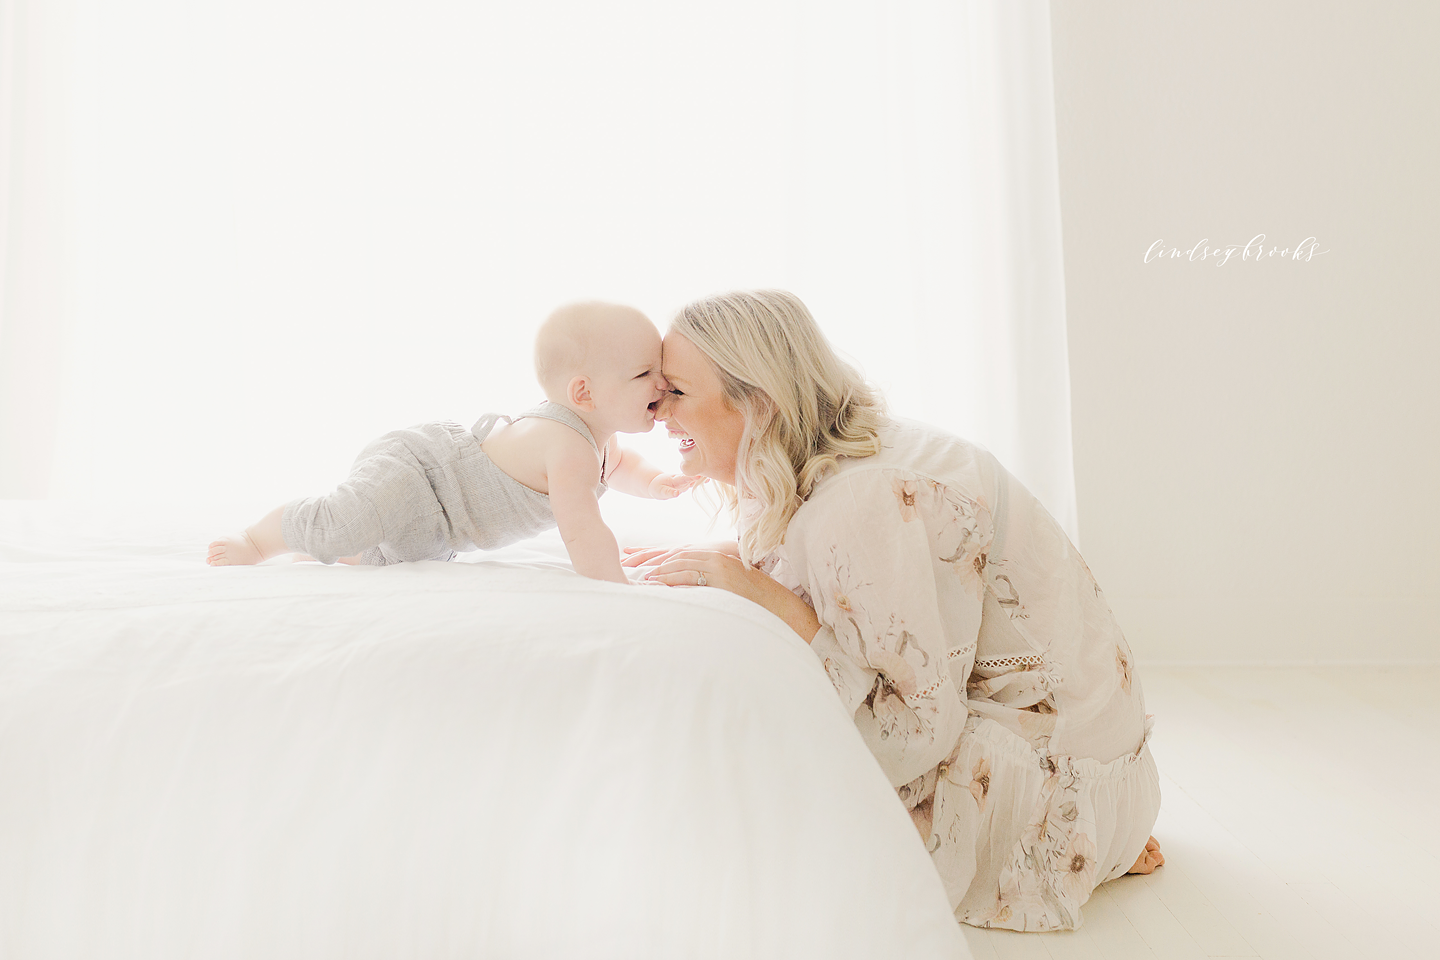 oklahoma-city-photographers-newborn-baby-motherhood-six-months-infant-child-family-photos-portraits-studio-simple-natural-light-2.png